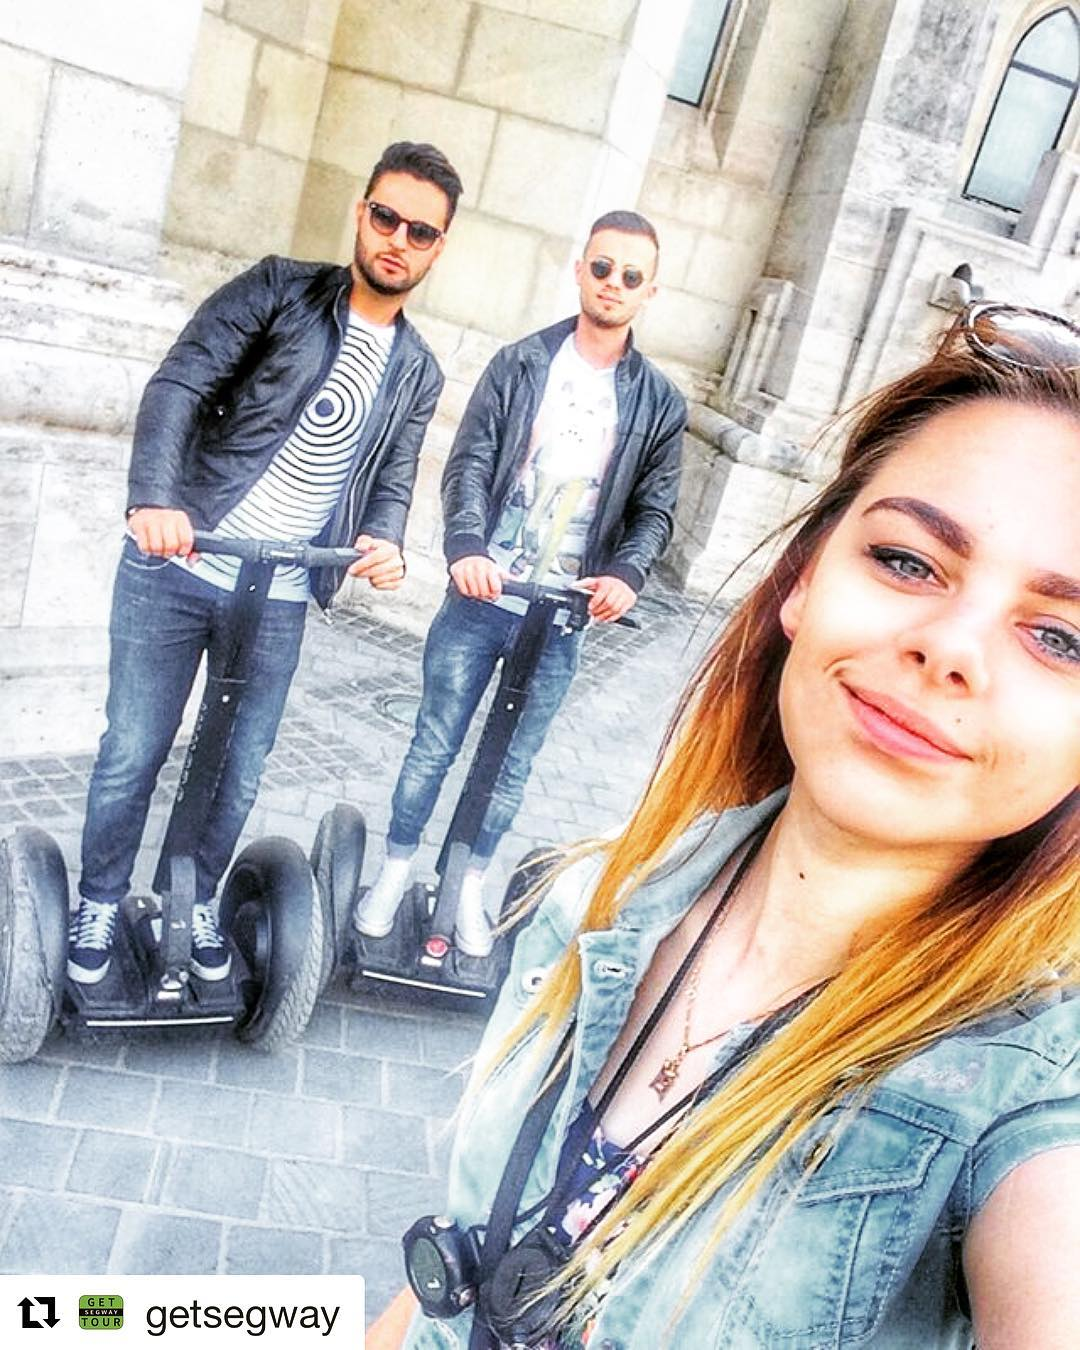 Segway selfie of the day from Budapest Hungary 🇭🇺 send your segway selfies by dm to be featured . . @getsegway ・・・ Let's take a selfie with our guides! This is Anastasia, she can speak in Russian and English.  Book your tours on our web site or just dm to us ️🤘🏻